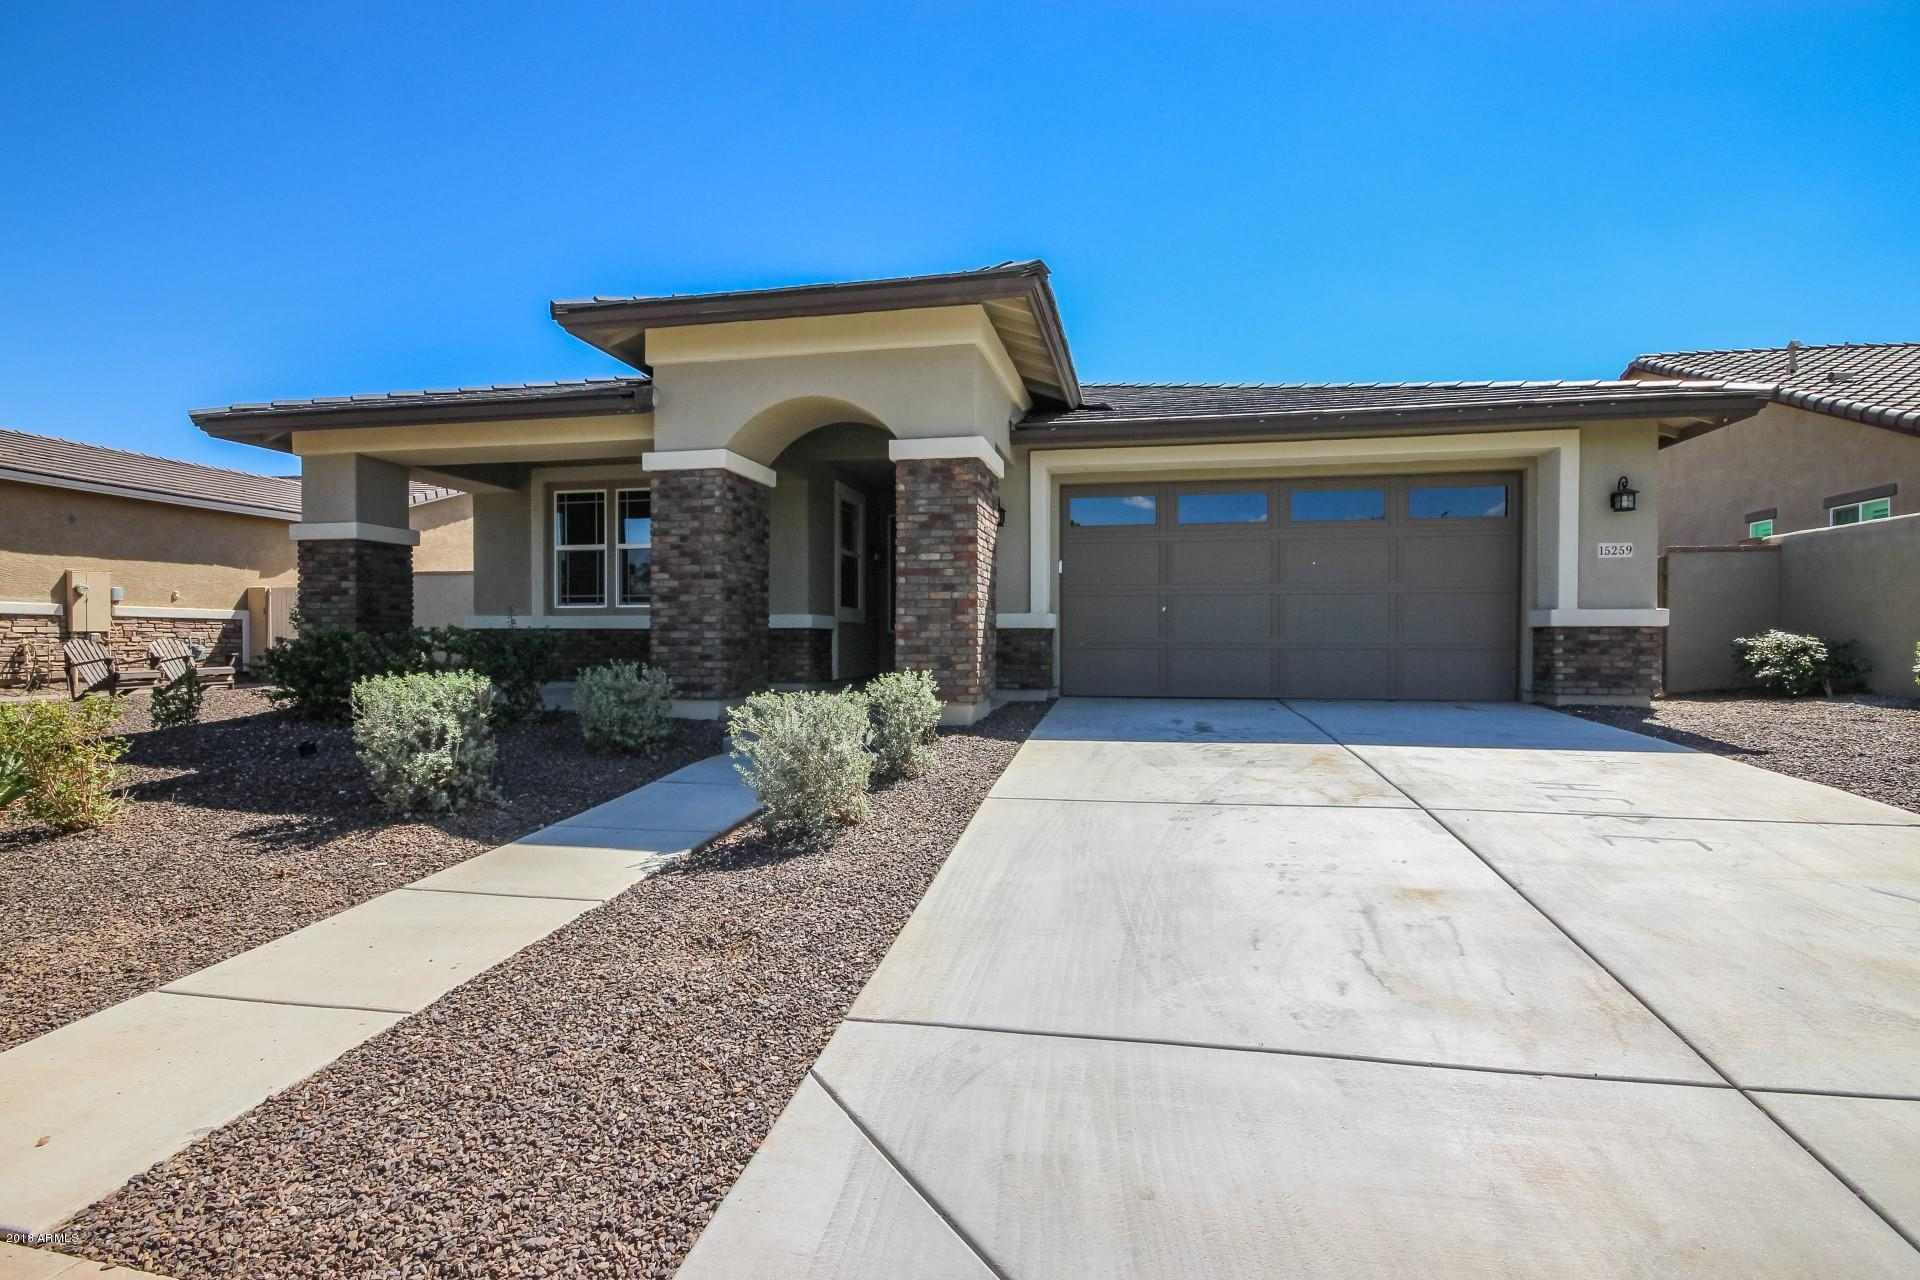 15259 W CHARTER OAK ROAD, SURPRISE, AZ 85379